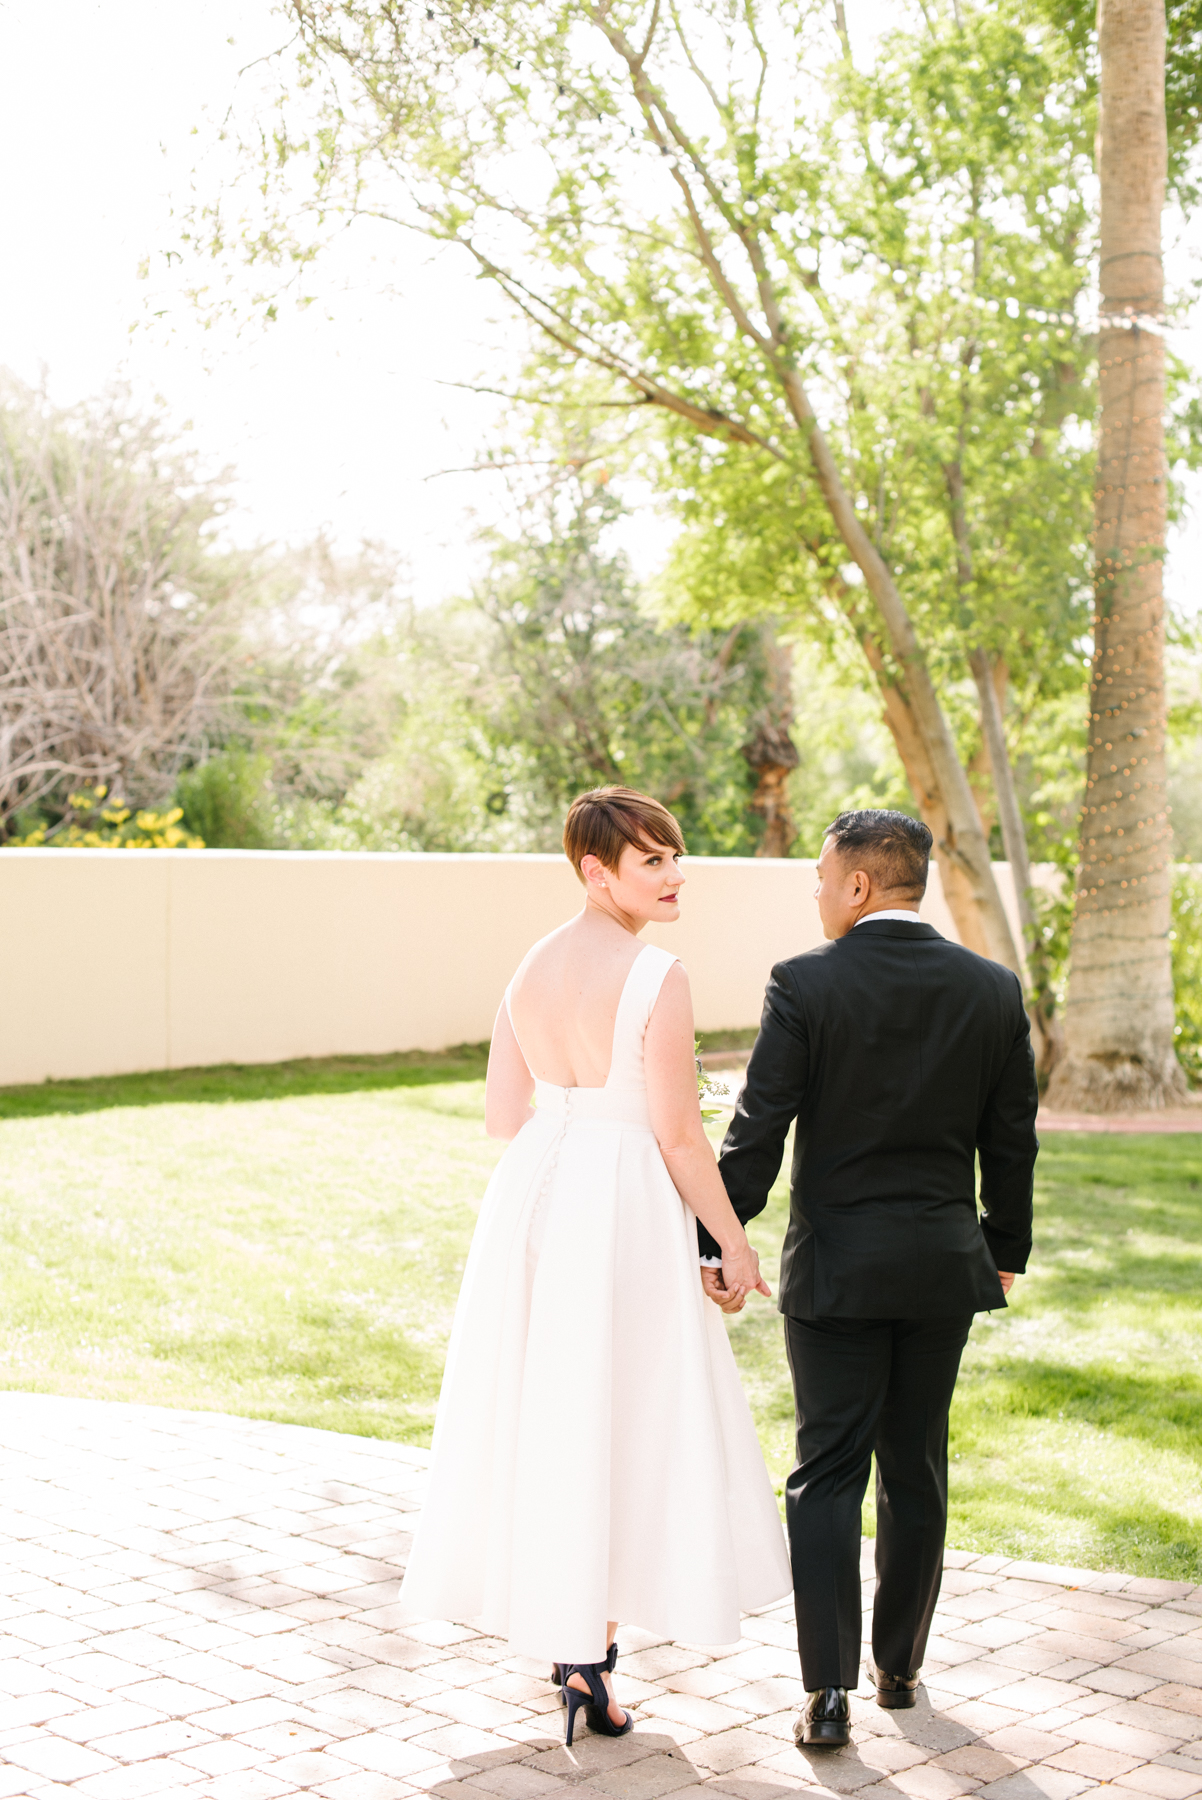 Secret Garden Event Center Wedding - Meredith Amadee Photography-44.jpg